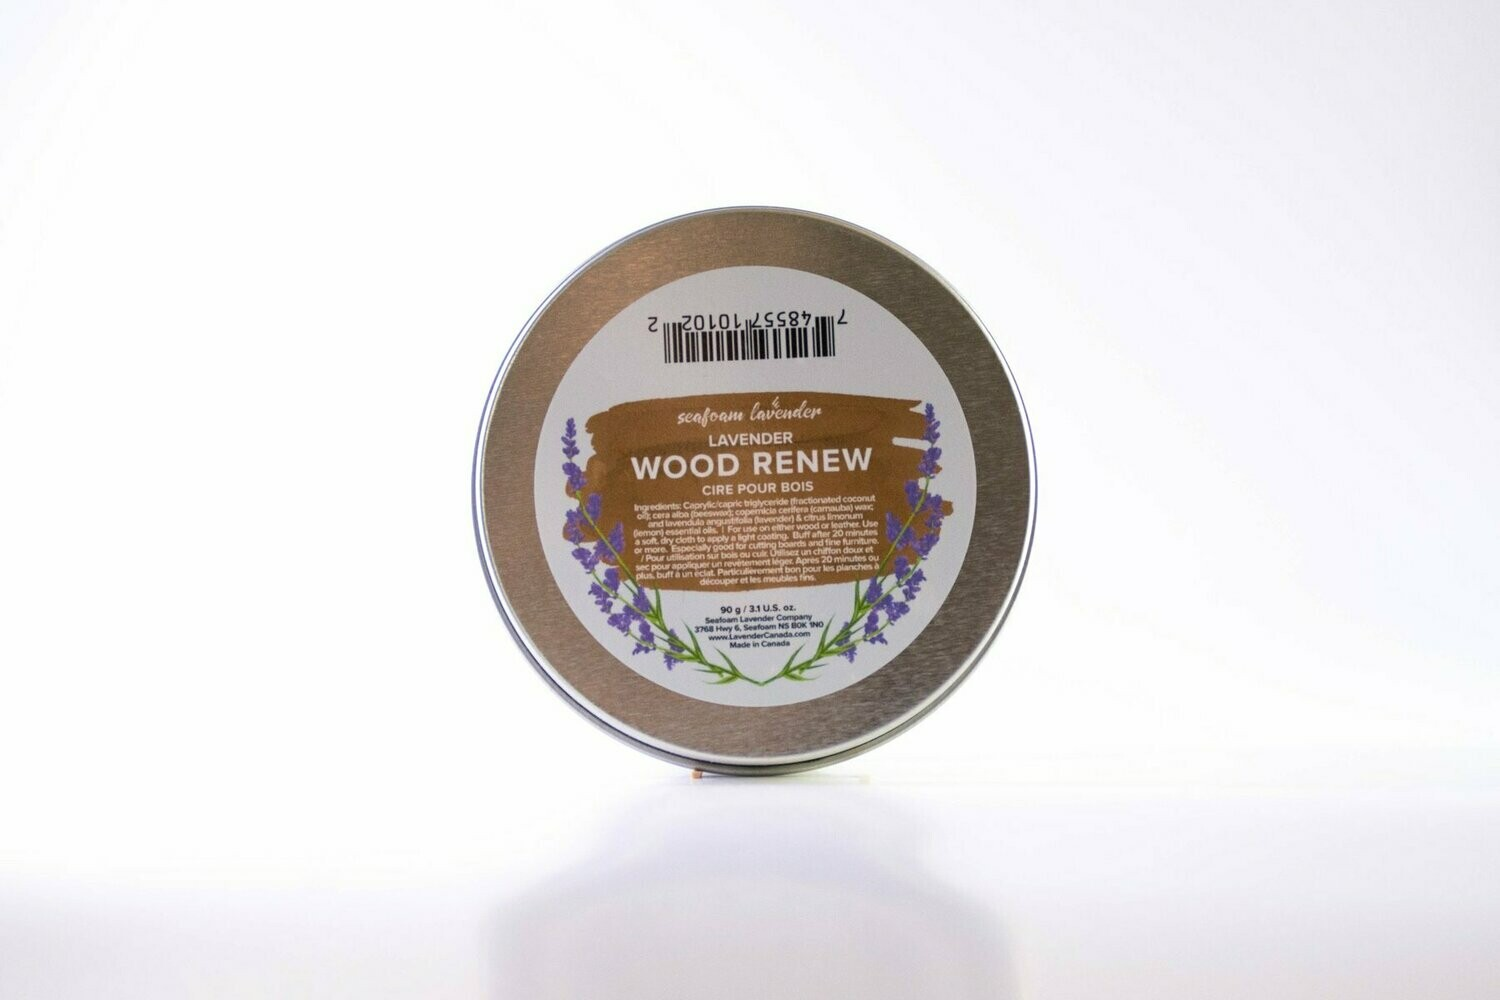 Wood Renew 90g/ 3.1oz